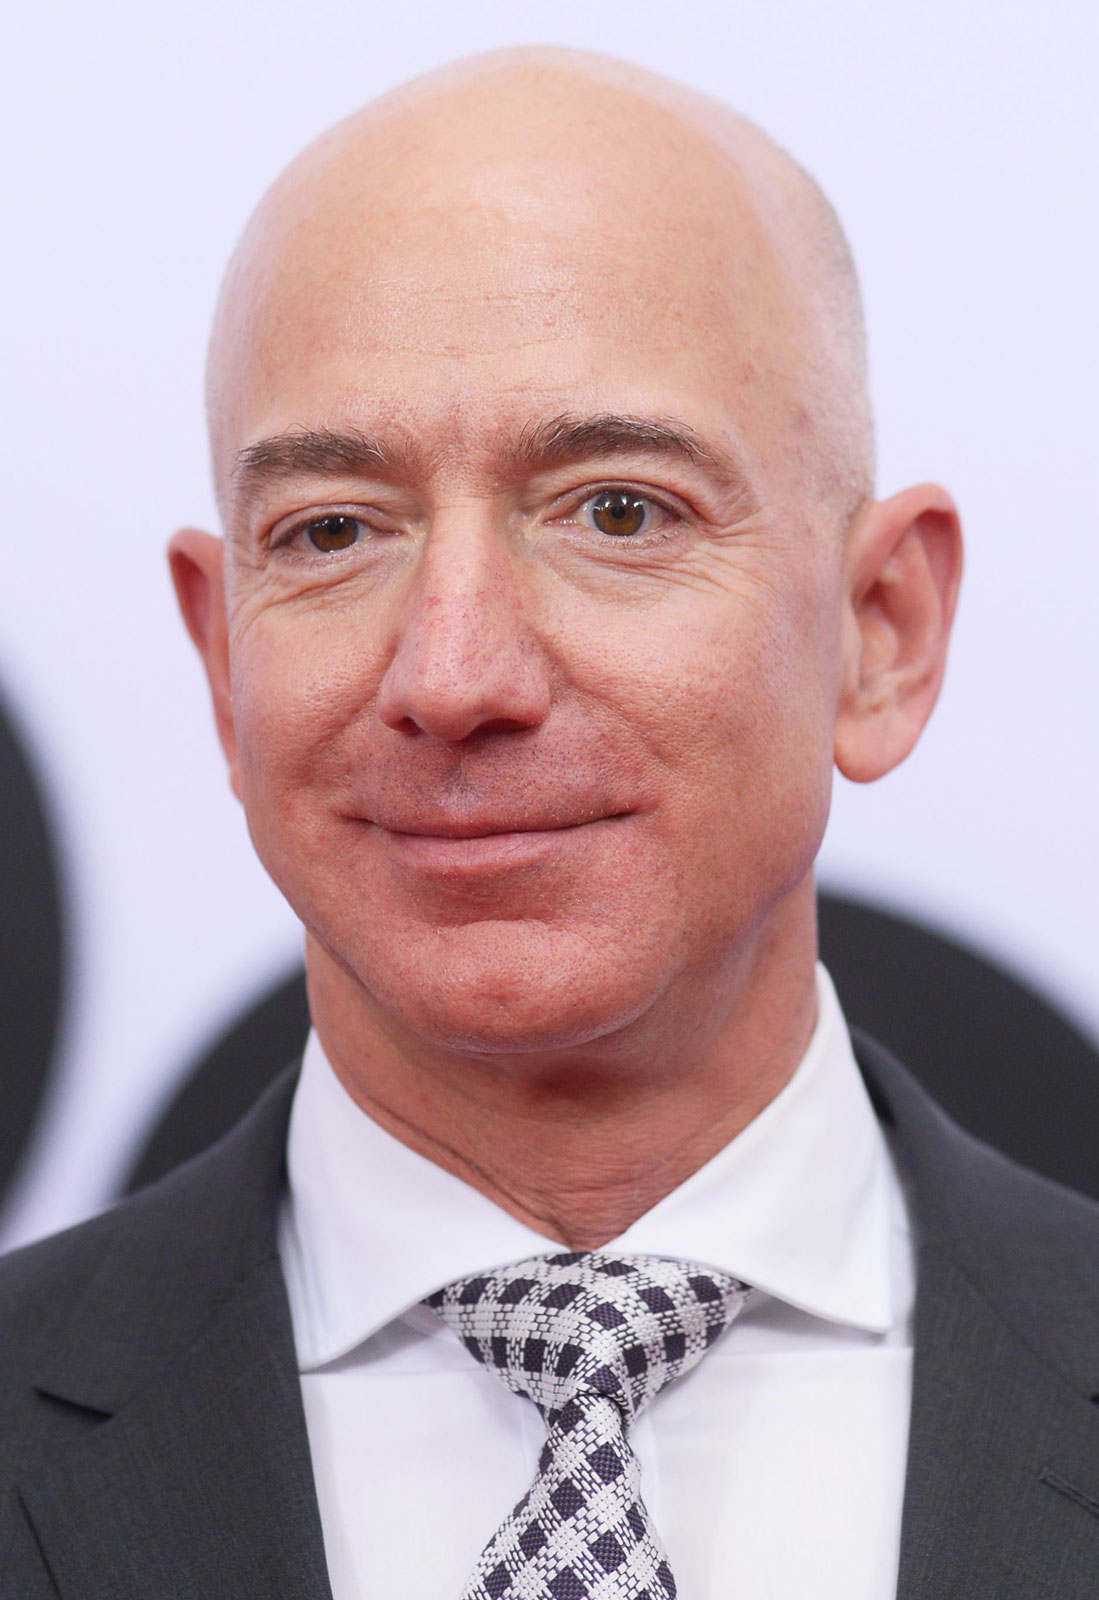 Amazon founder Jeff Bezos interested in owning NFL team, has strong support among current owners. #Amazon #JeffBezos #NFL